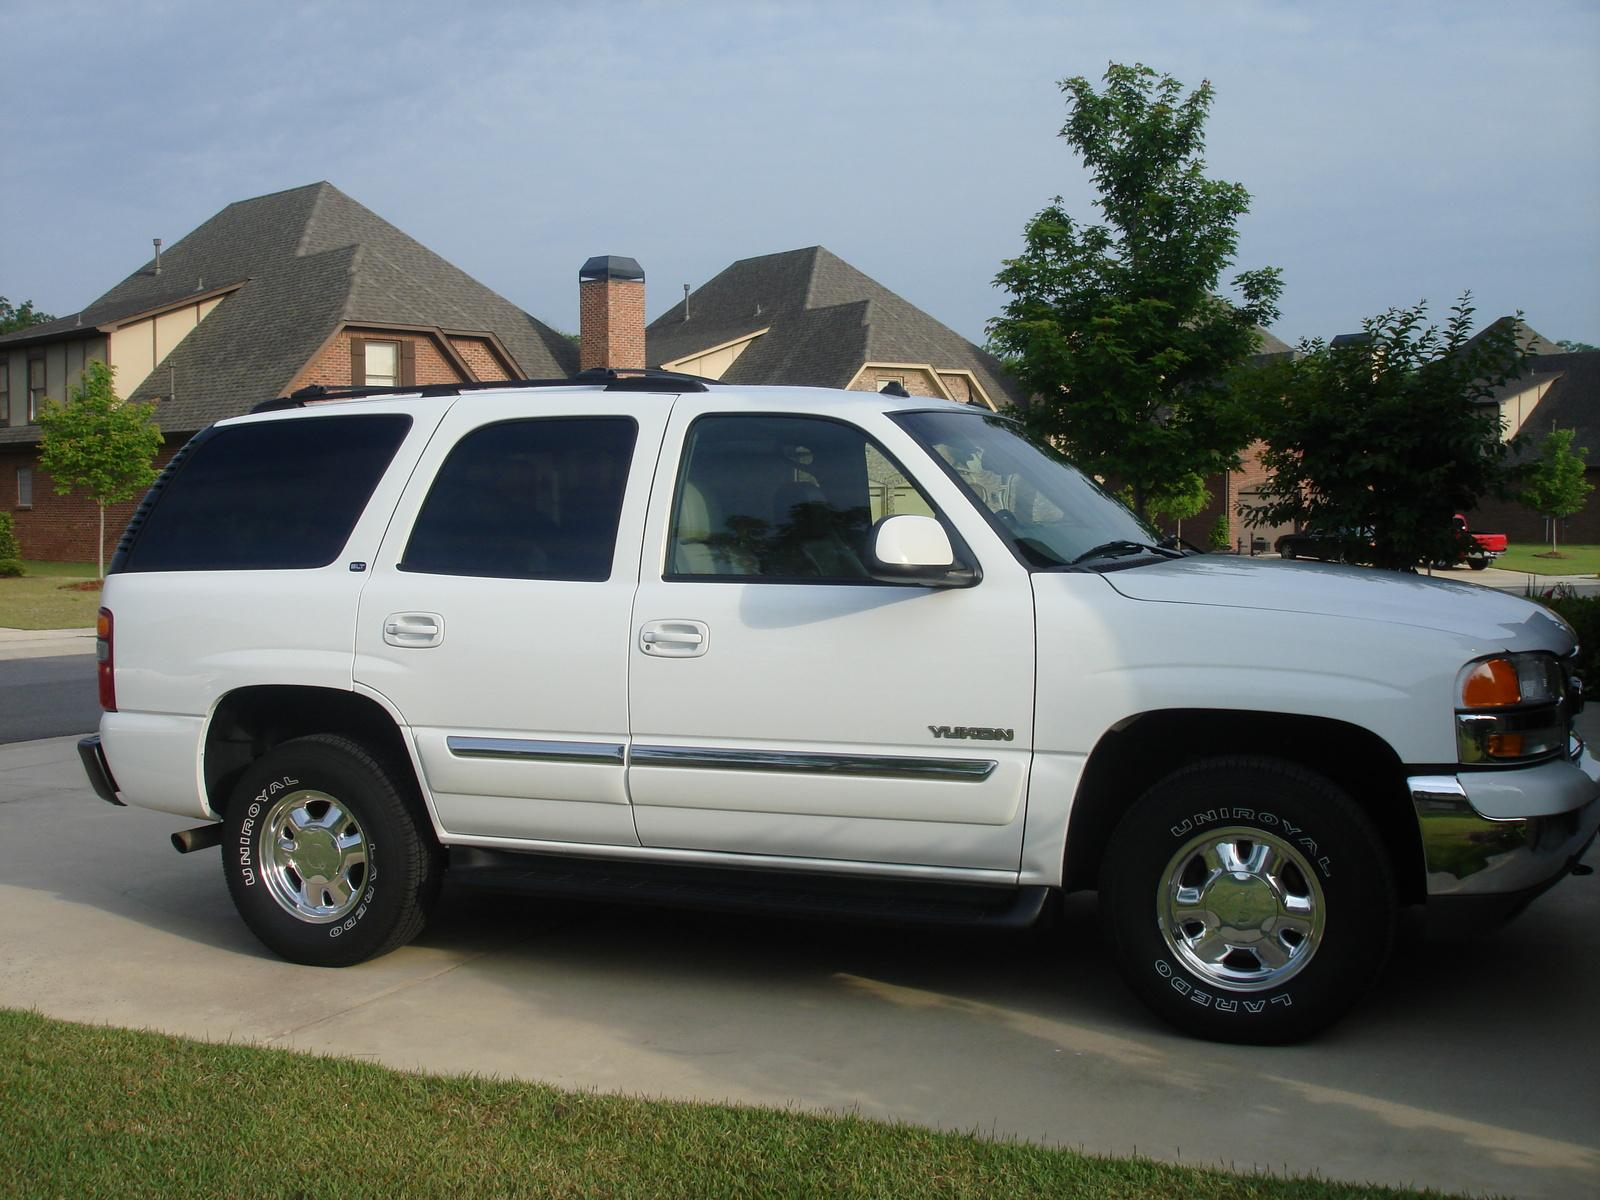 2003 gmc yukon information and photos zombiedrive. Black Bedroom Furniture Sets. Home Design Ideas